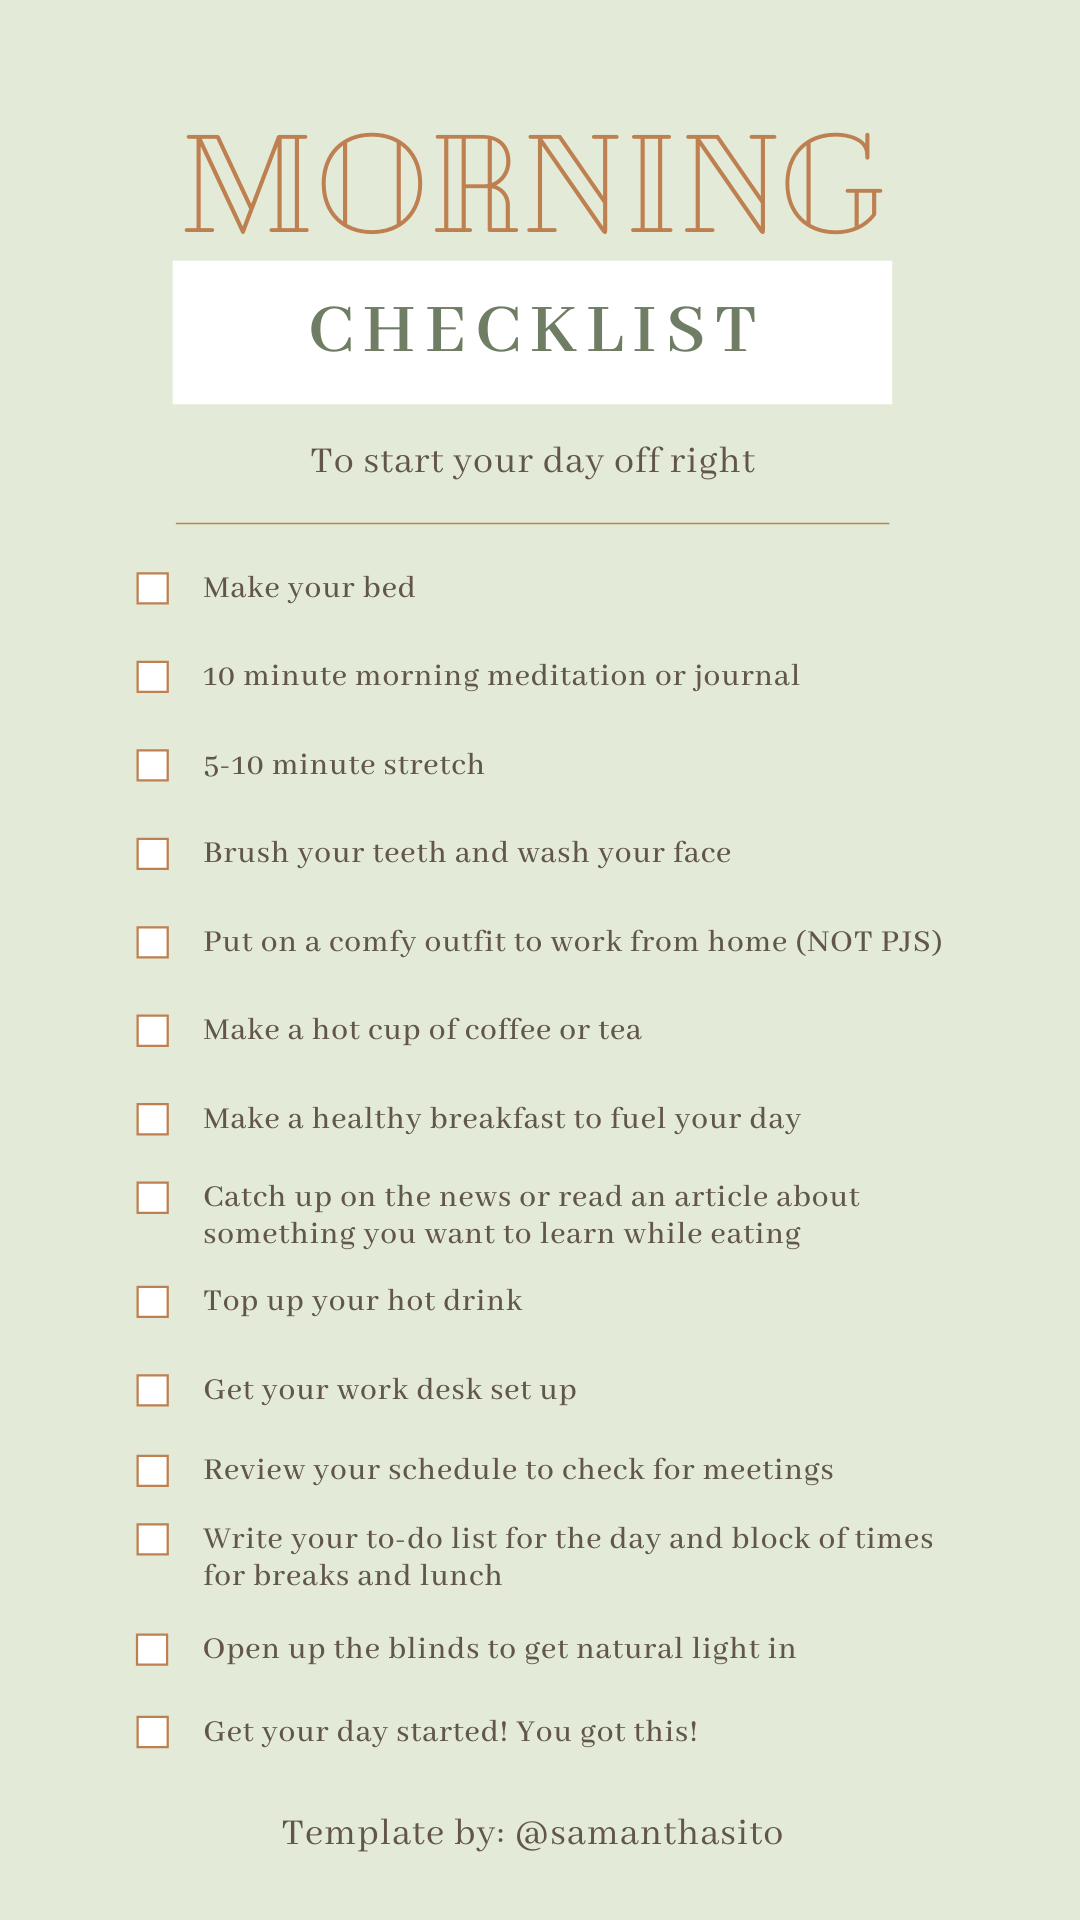 Morning Checklist for a Productive Day